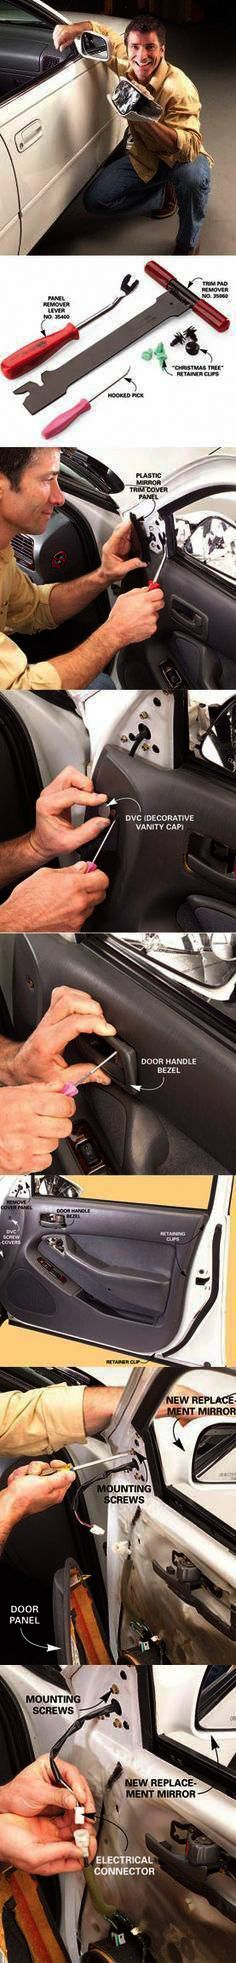 30 Best Ride Fix-up images in 2017 | Car hacks, Car cleaning